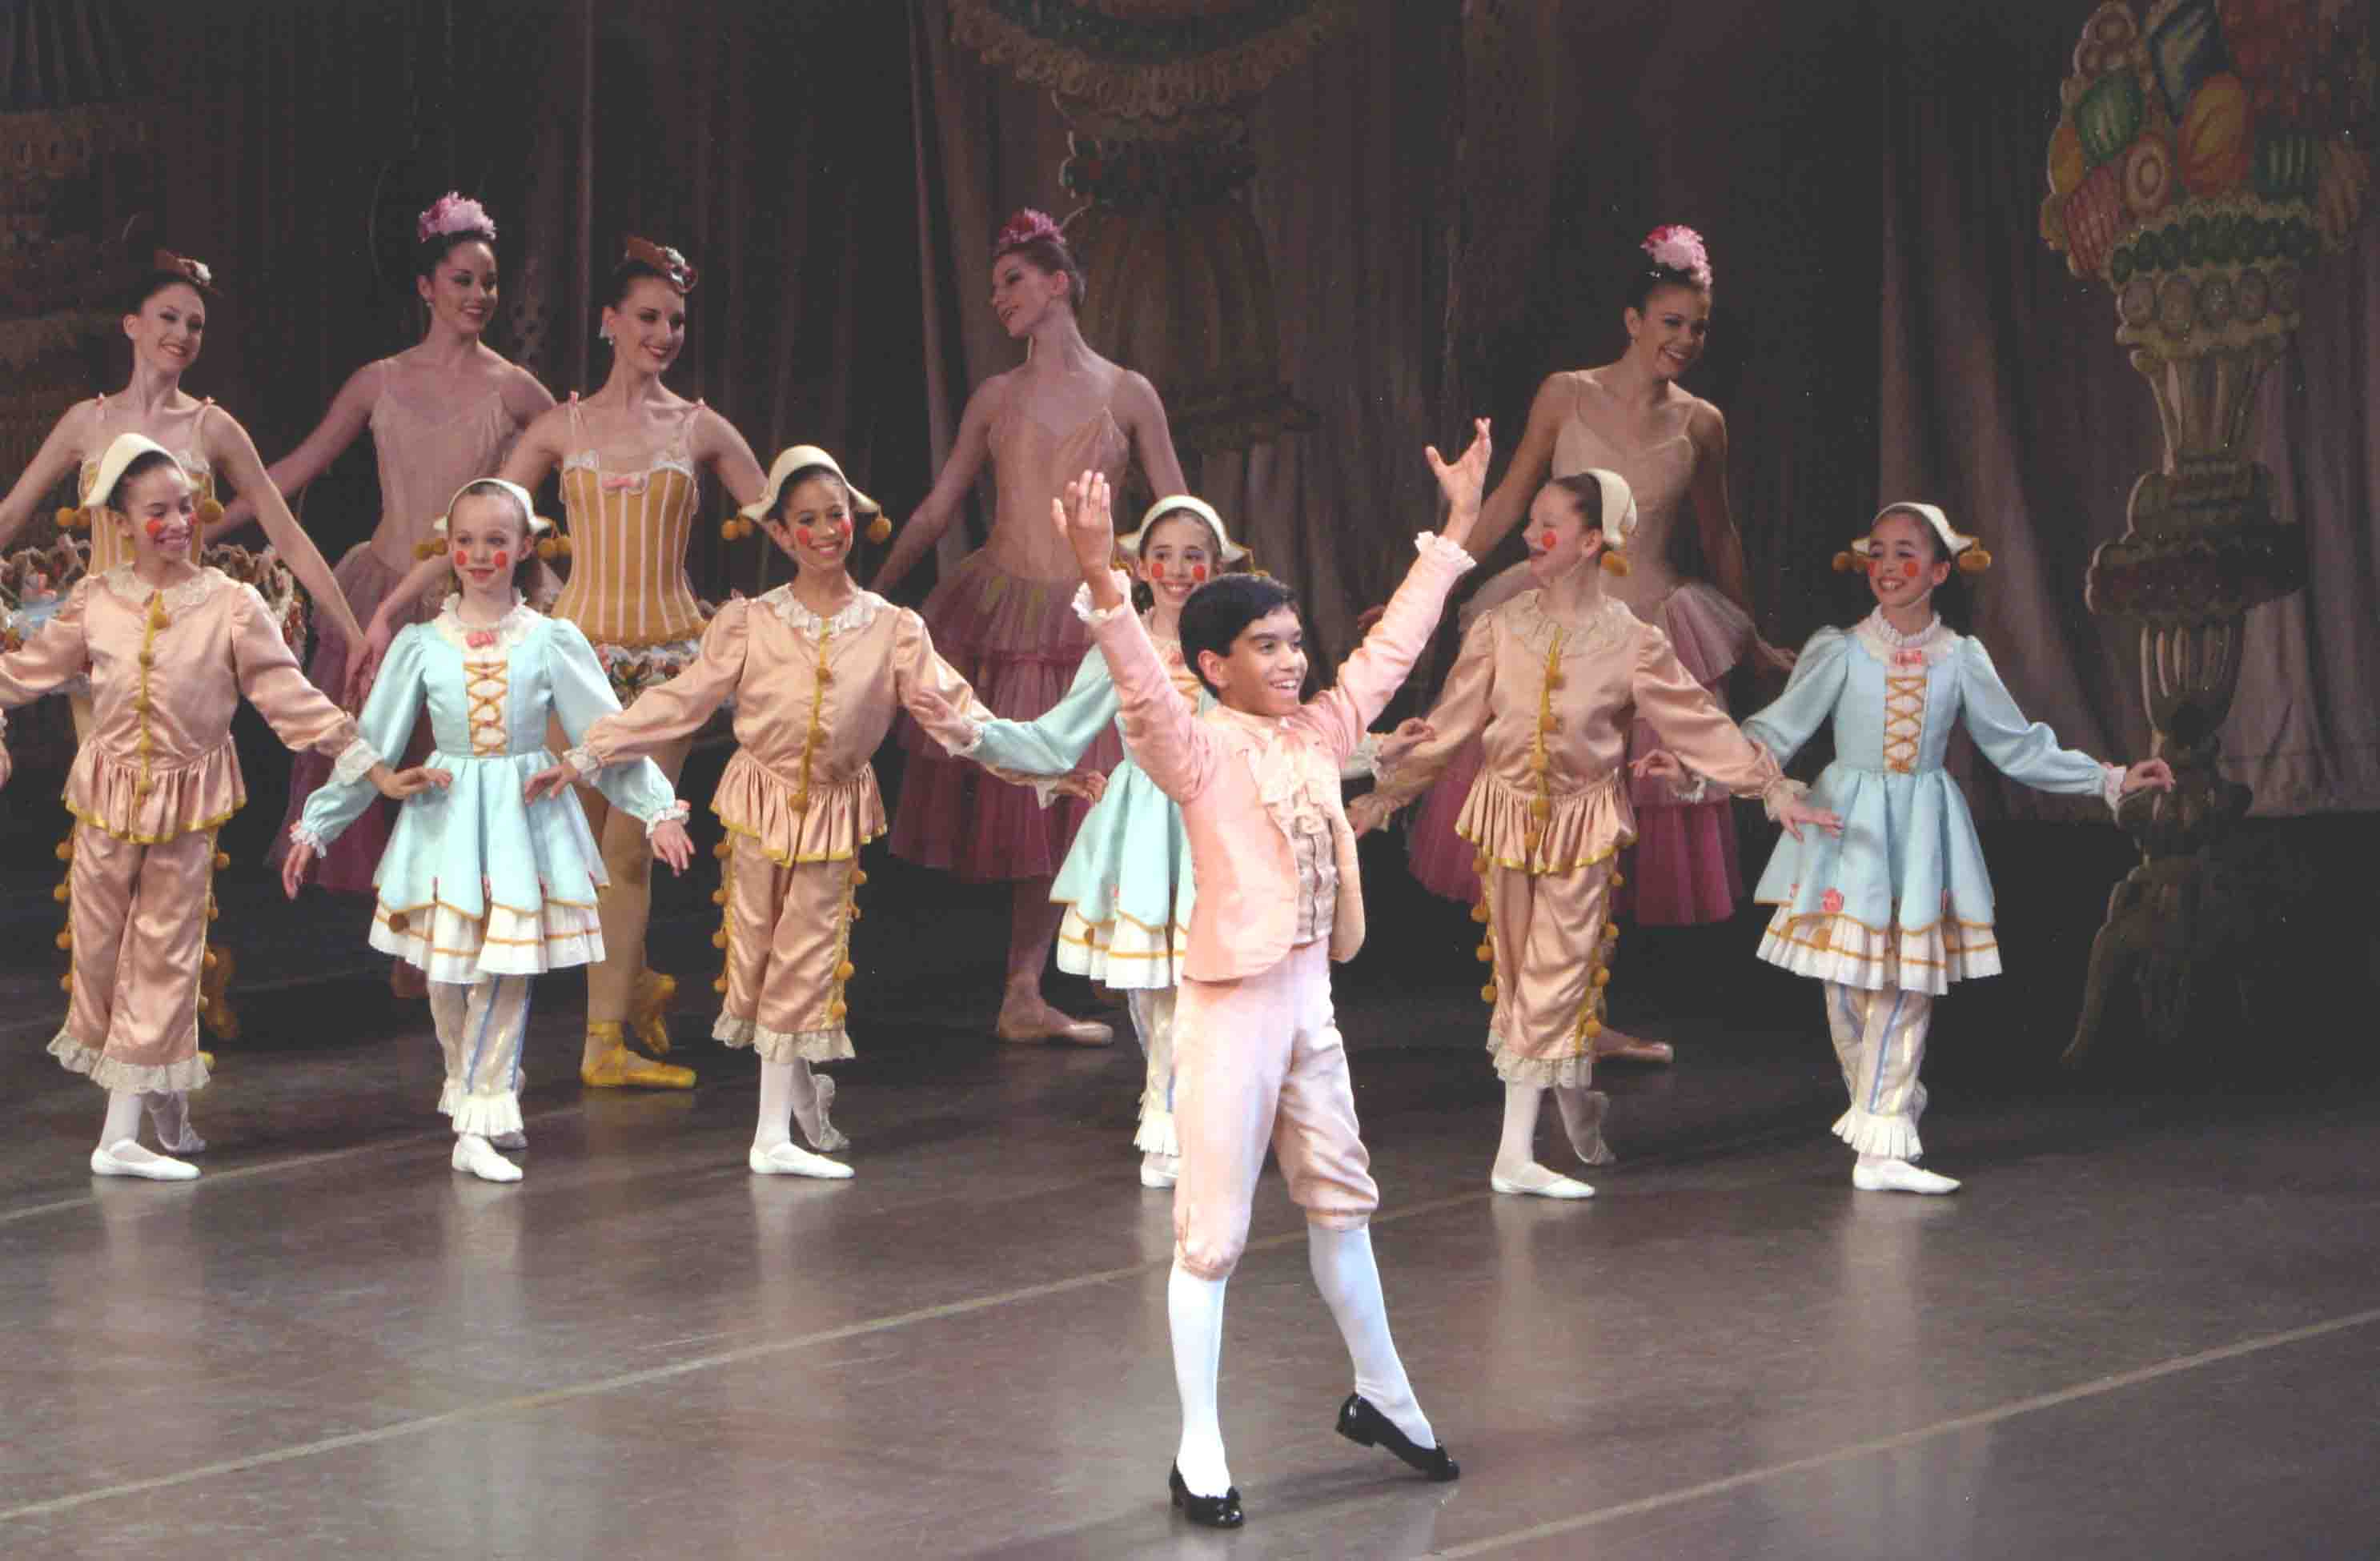 NYCB_Prince Pantomime_Gregory Malek-Jones_2004_Paul Kolnik2r.jpg